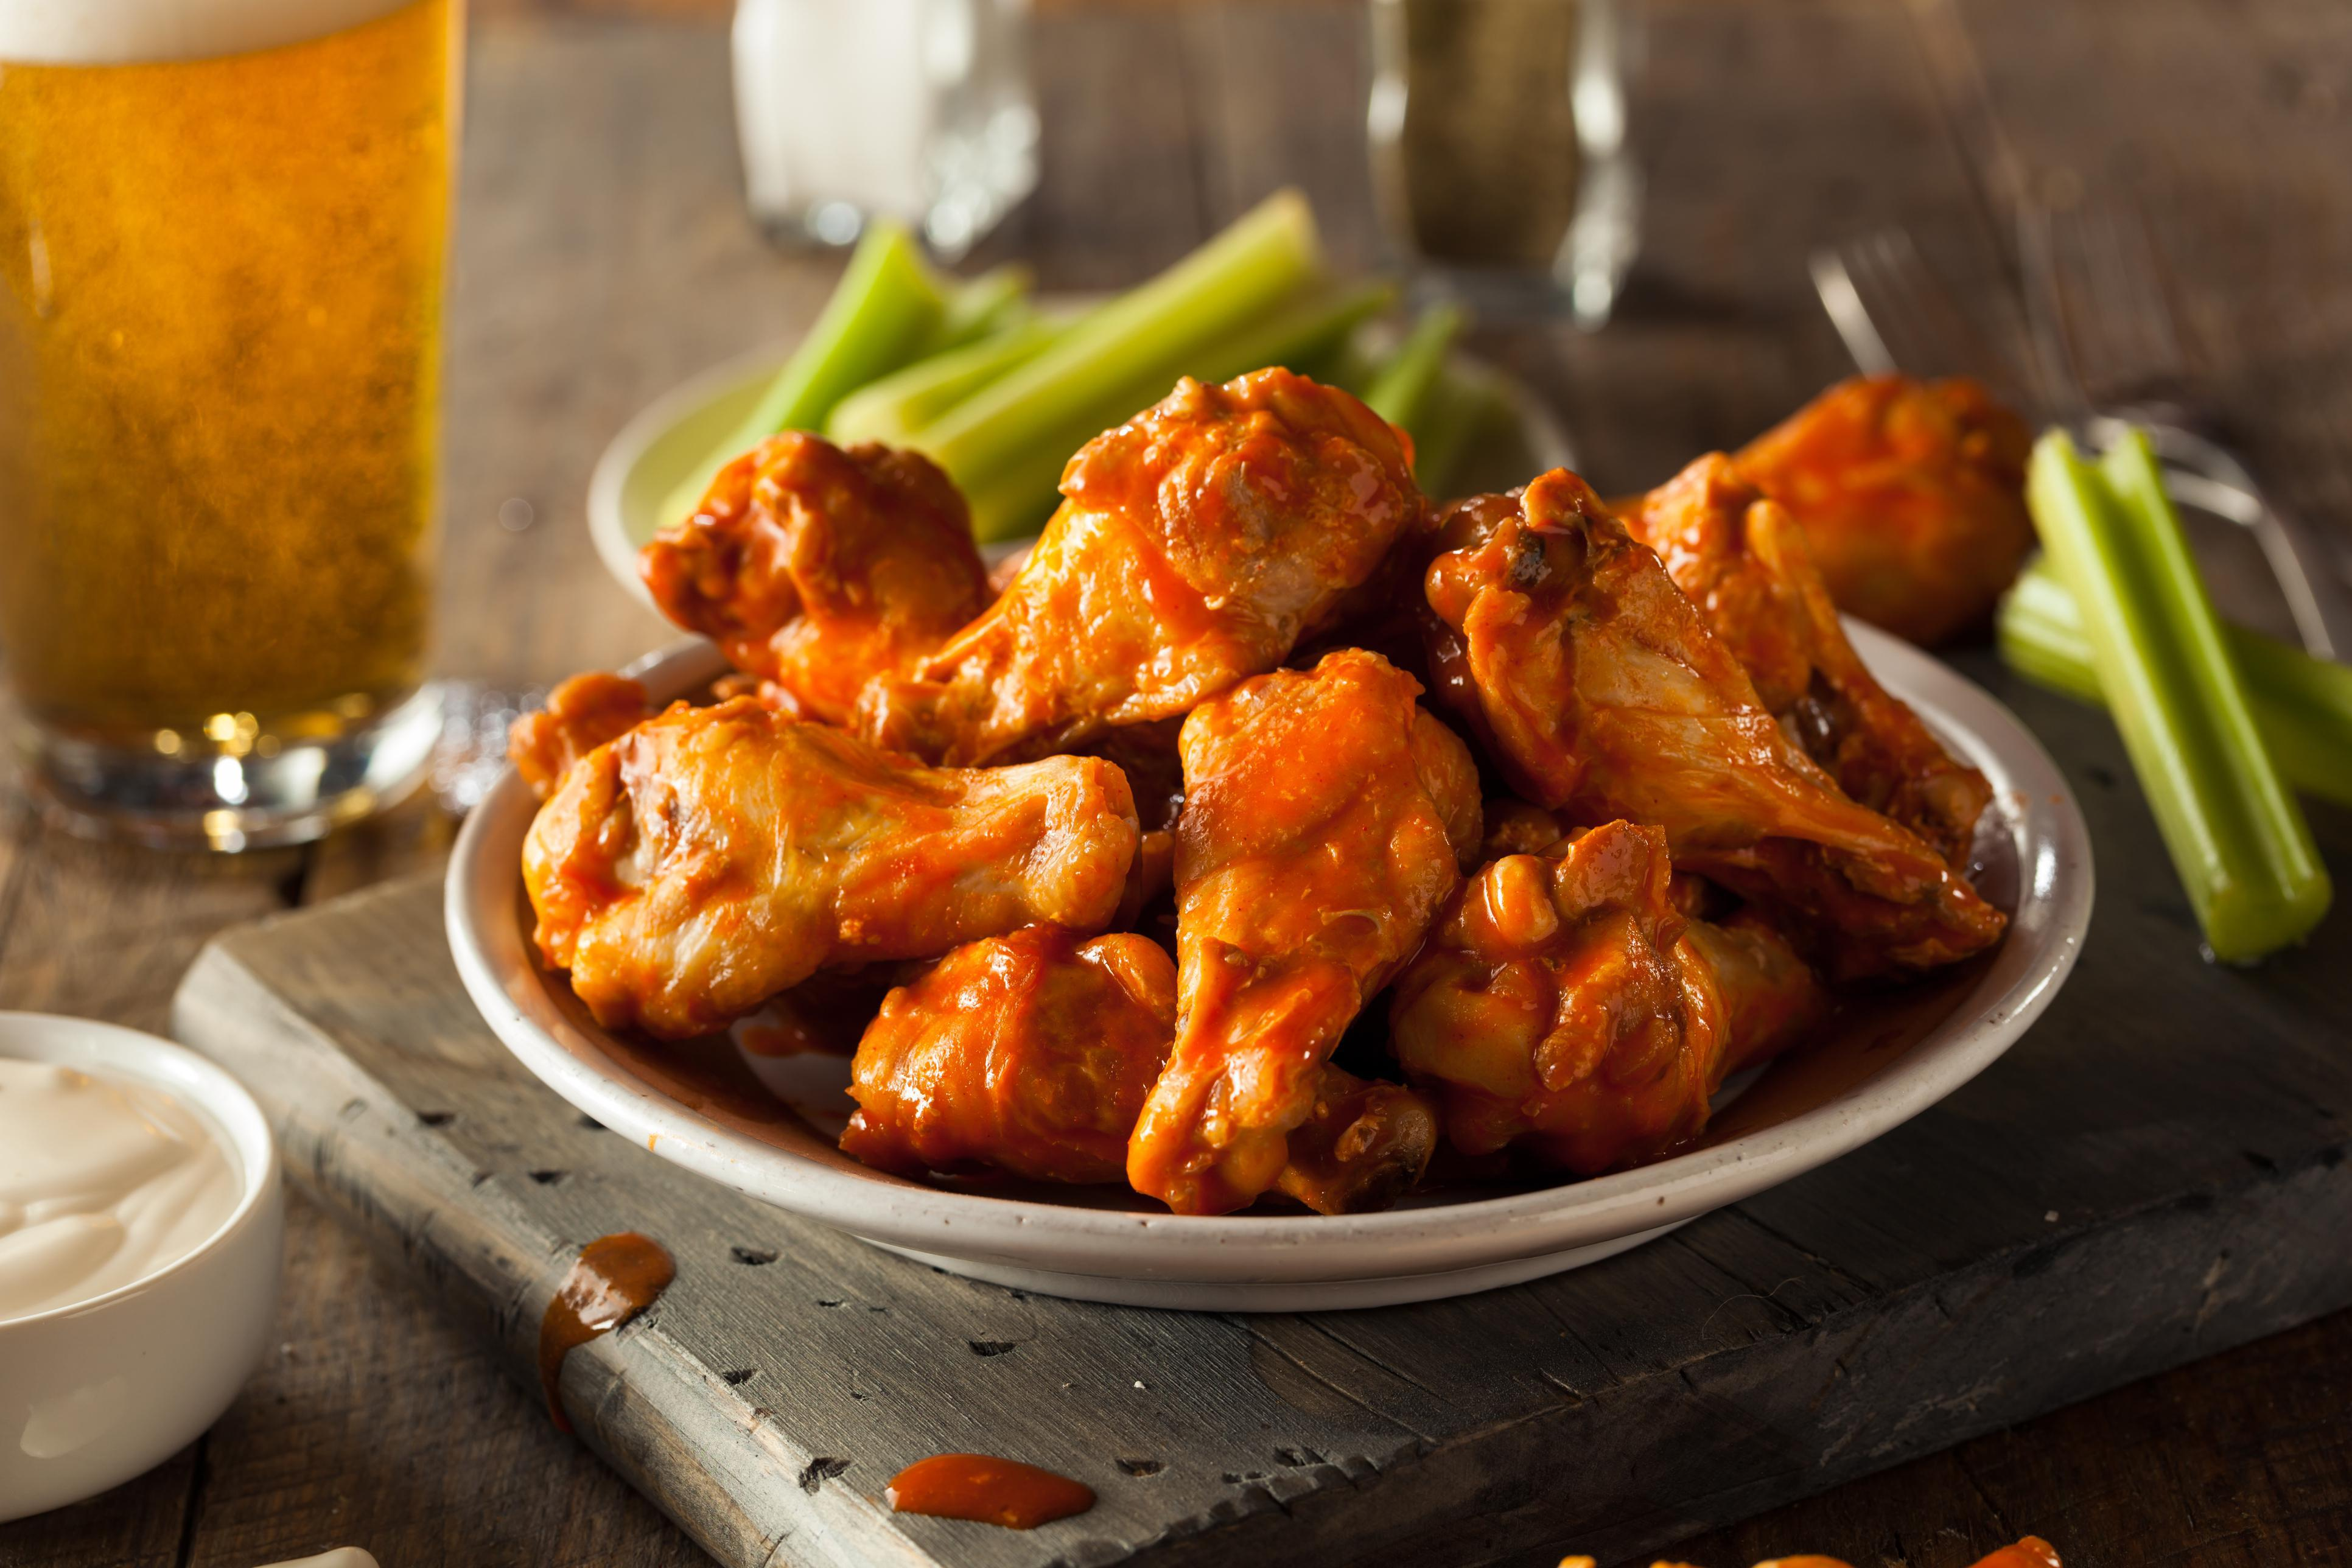 Chicken Wings with a choice of chipotle barbeque or traditional hot served with veggies and blue cheese or ranch dressing at Hotel Indigo San Diego